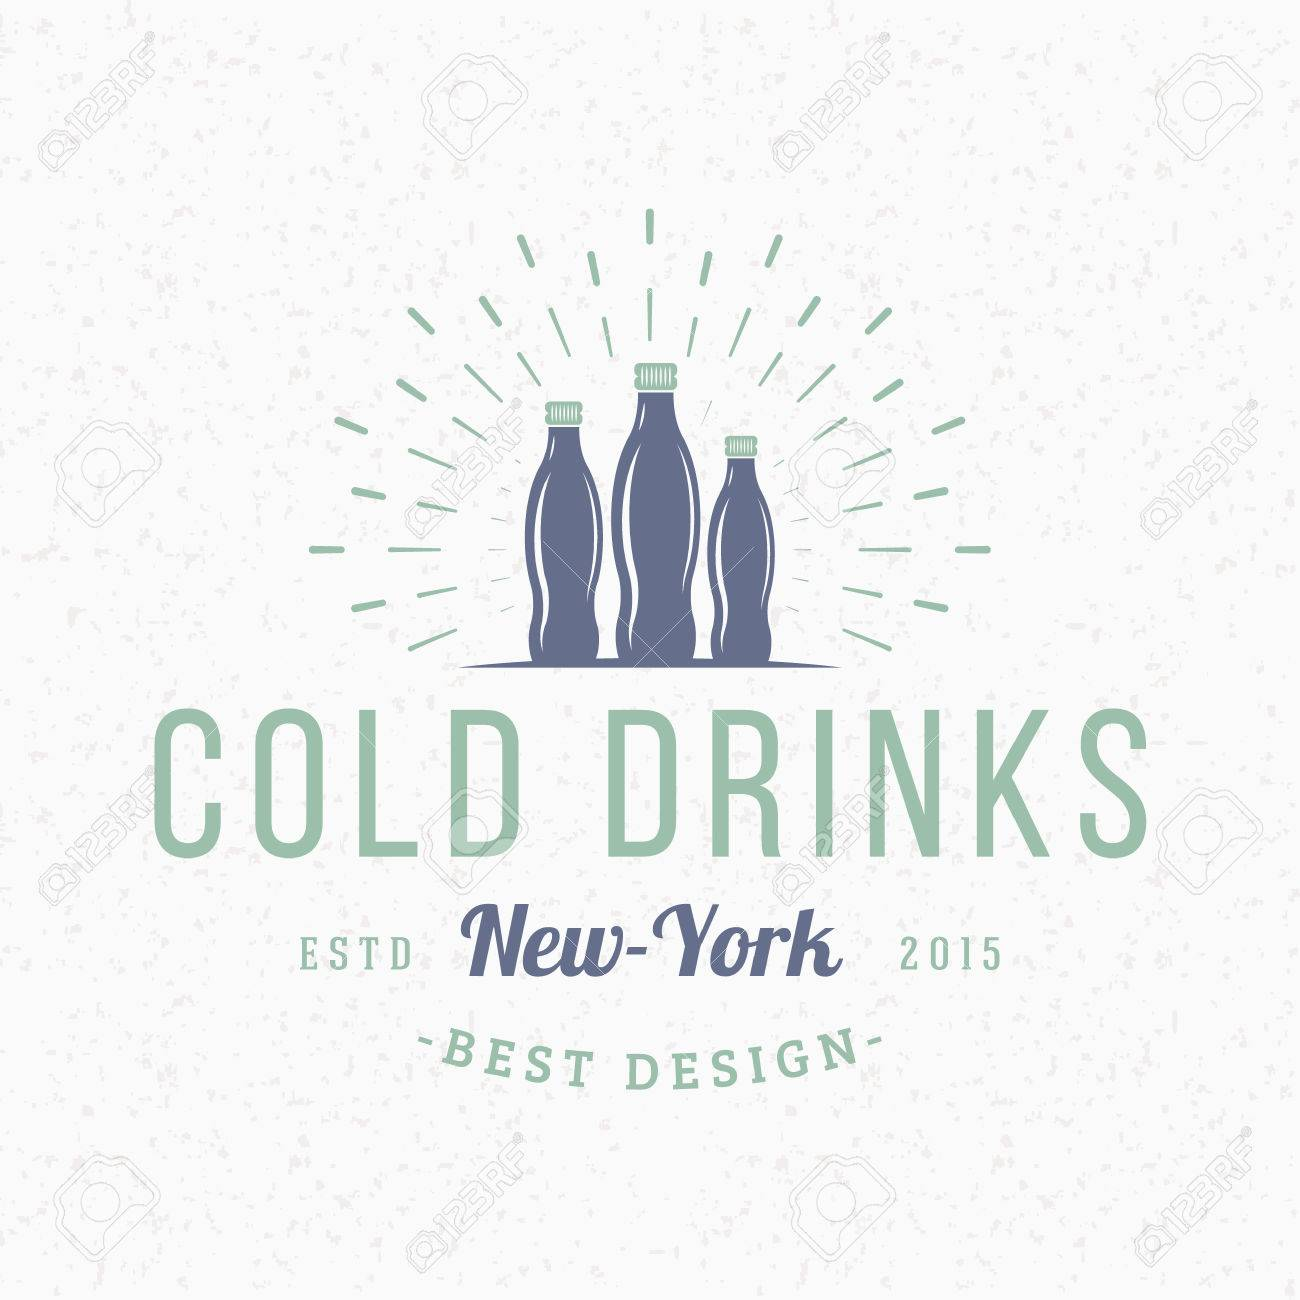 Cold drinks vintage retro design elements for logotype insignia business sign template textured background cold drinks vintage retro design elements for logotype insignia badge label pronofoot35fo Gallery